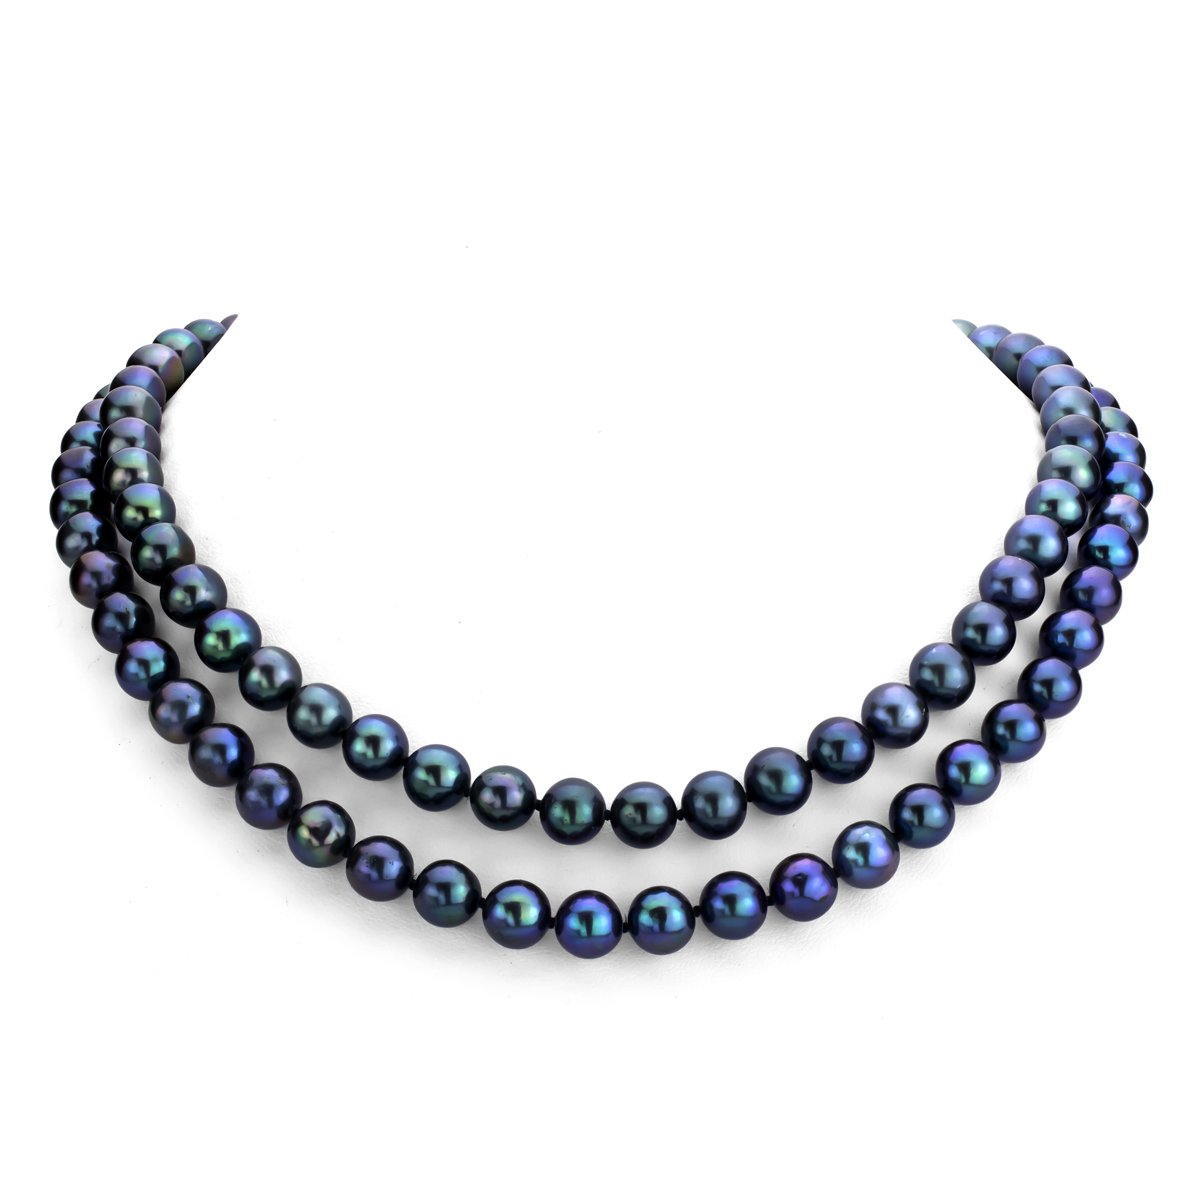 La Regis Jewelry Sterling Silver 2-Rows Dyed Black Freshwater Cultured High Luster Pearl Necklace, 17